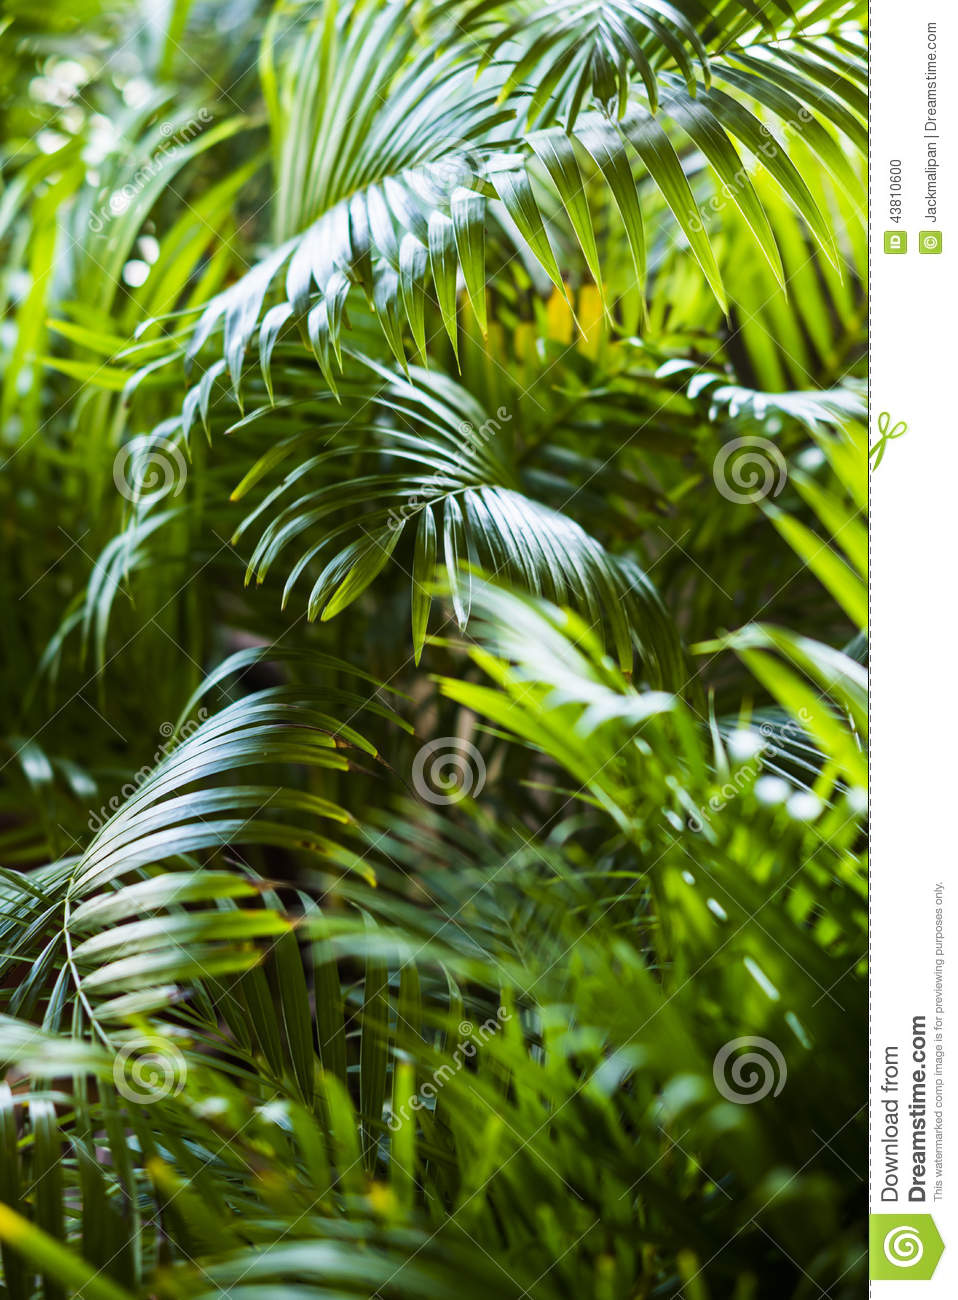 Free Hd Wallpaper For Desktop Background Tropical Exotic Palm Leaves Background Stock Photo Image